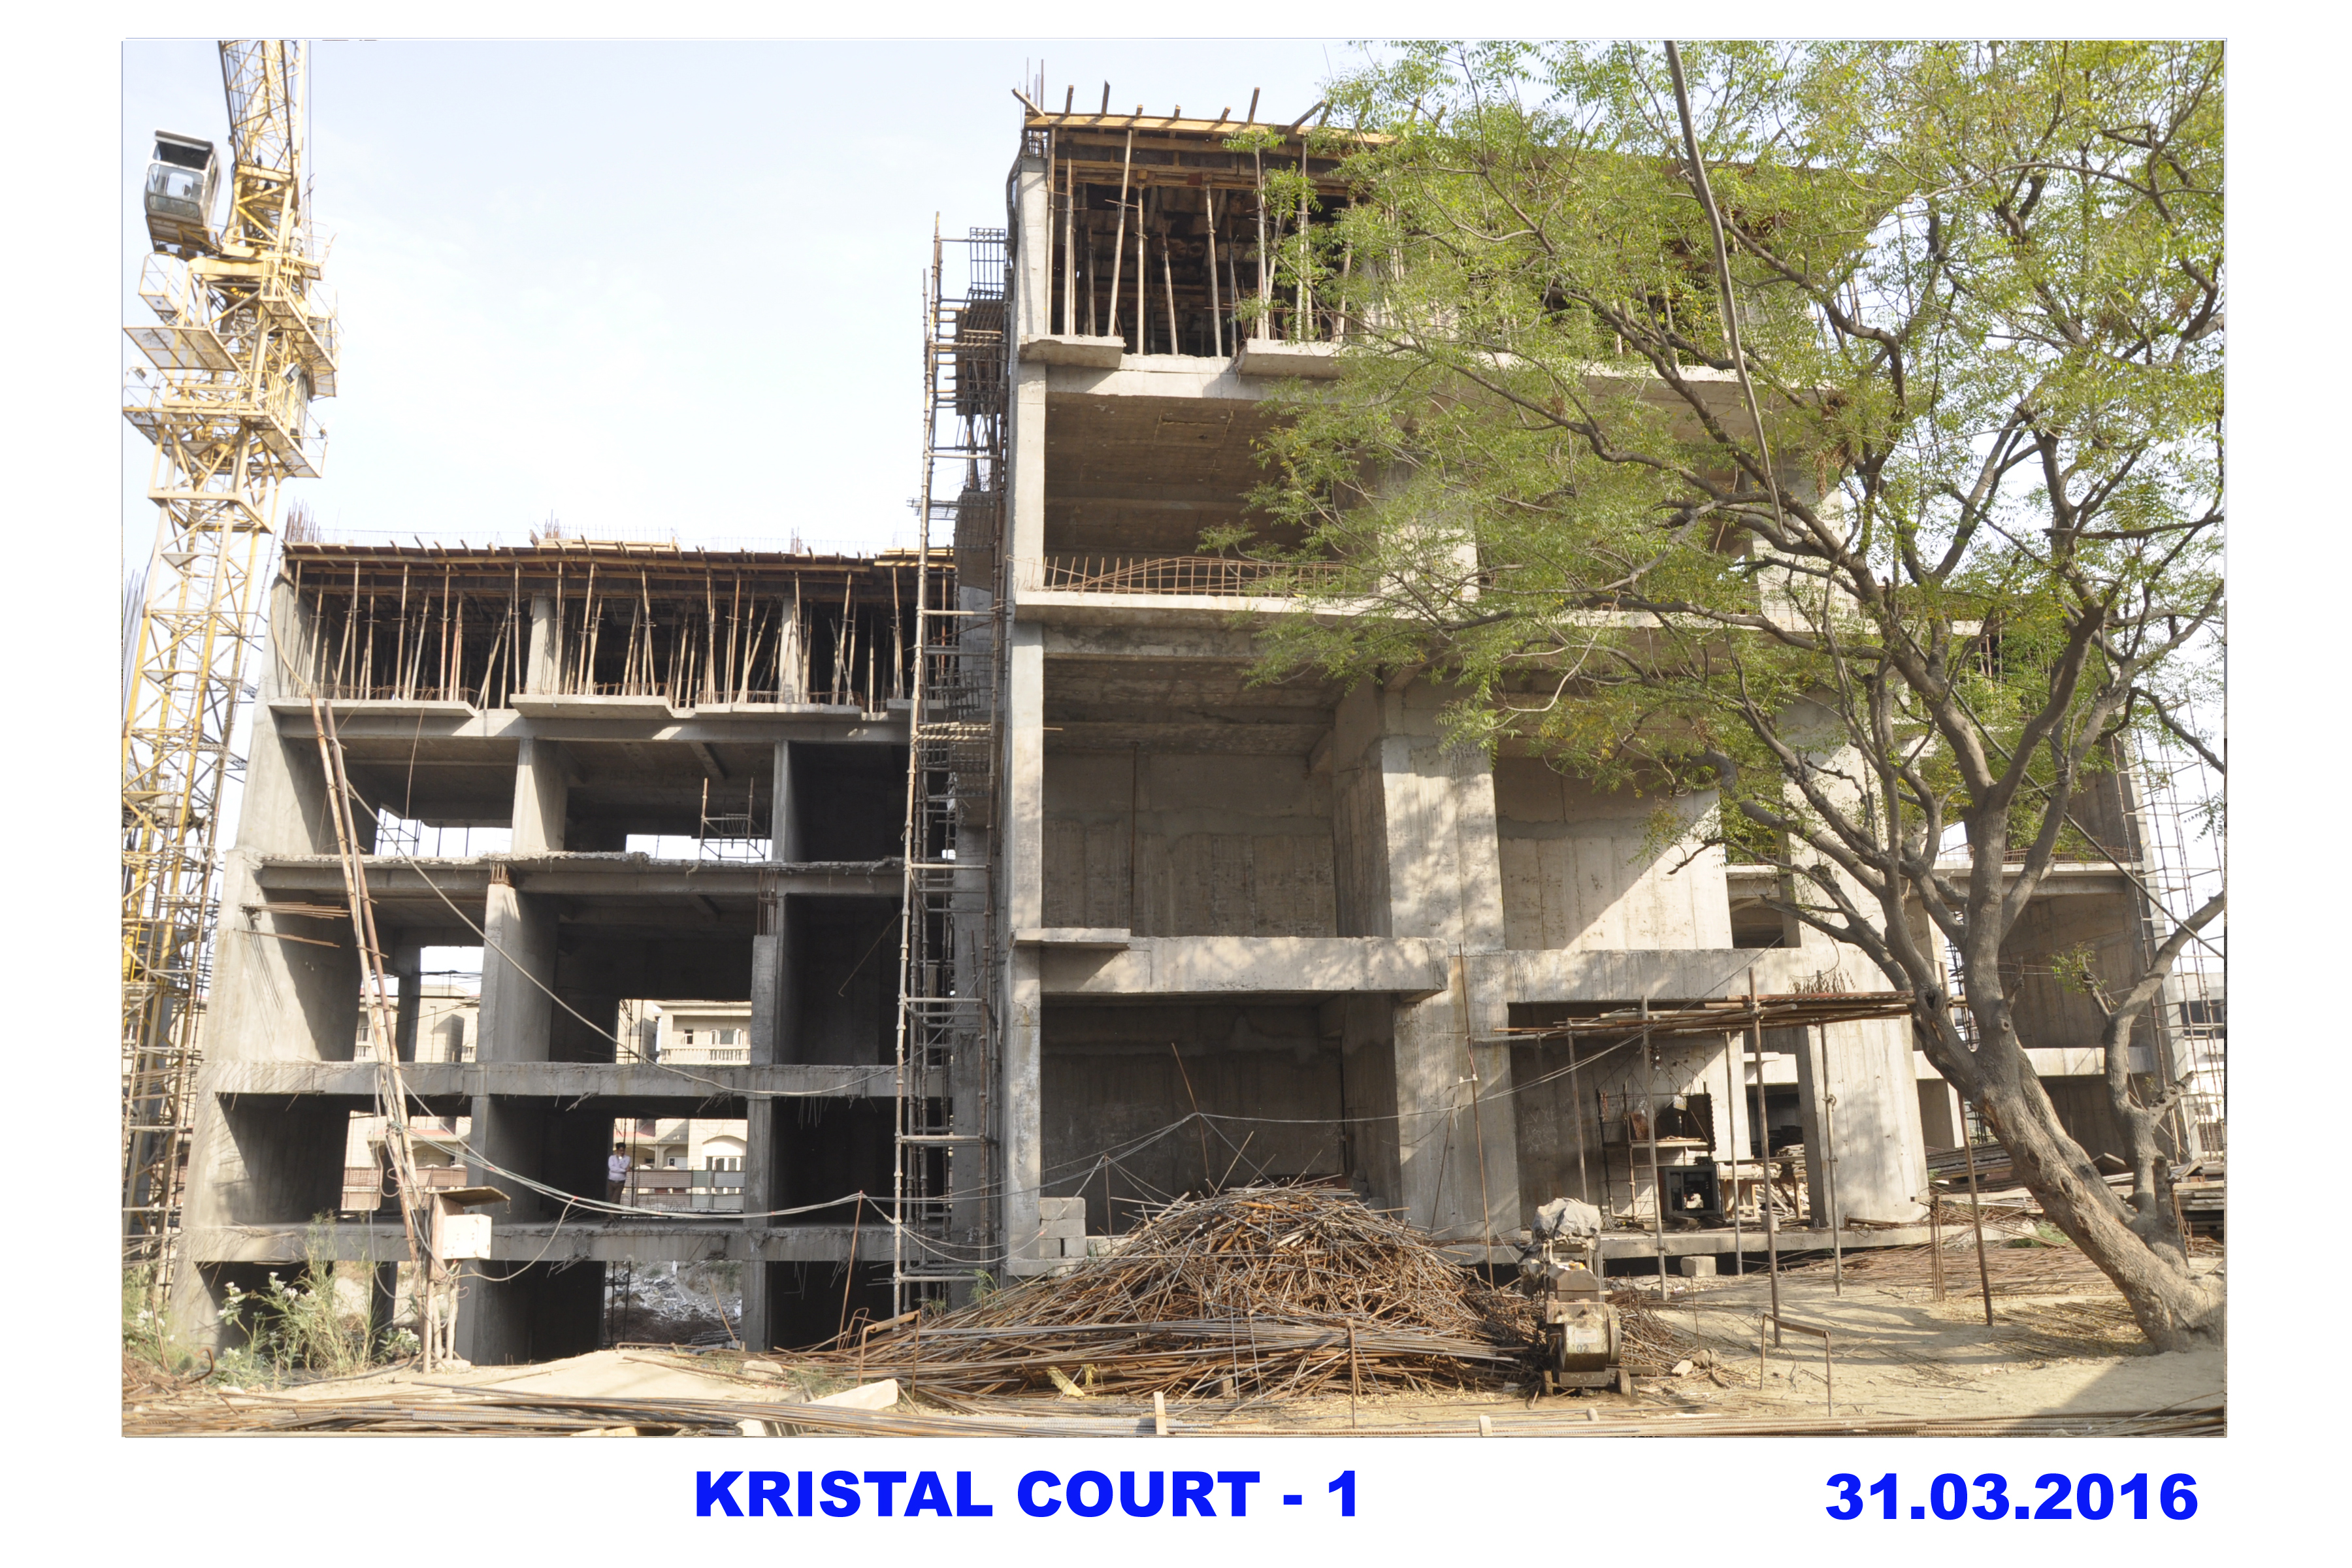 Kristal Court Tower - 1